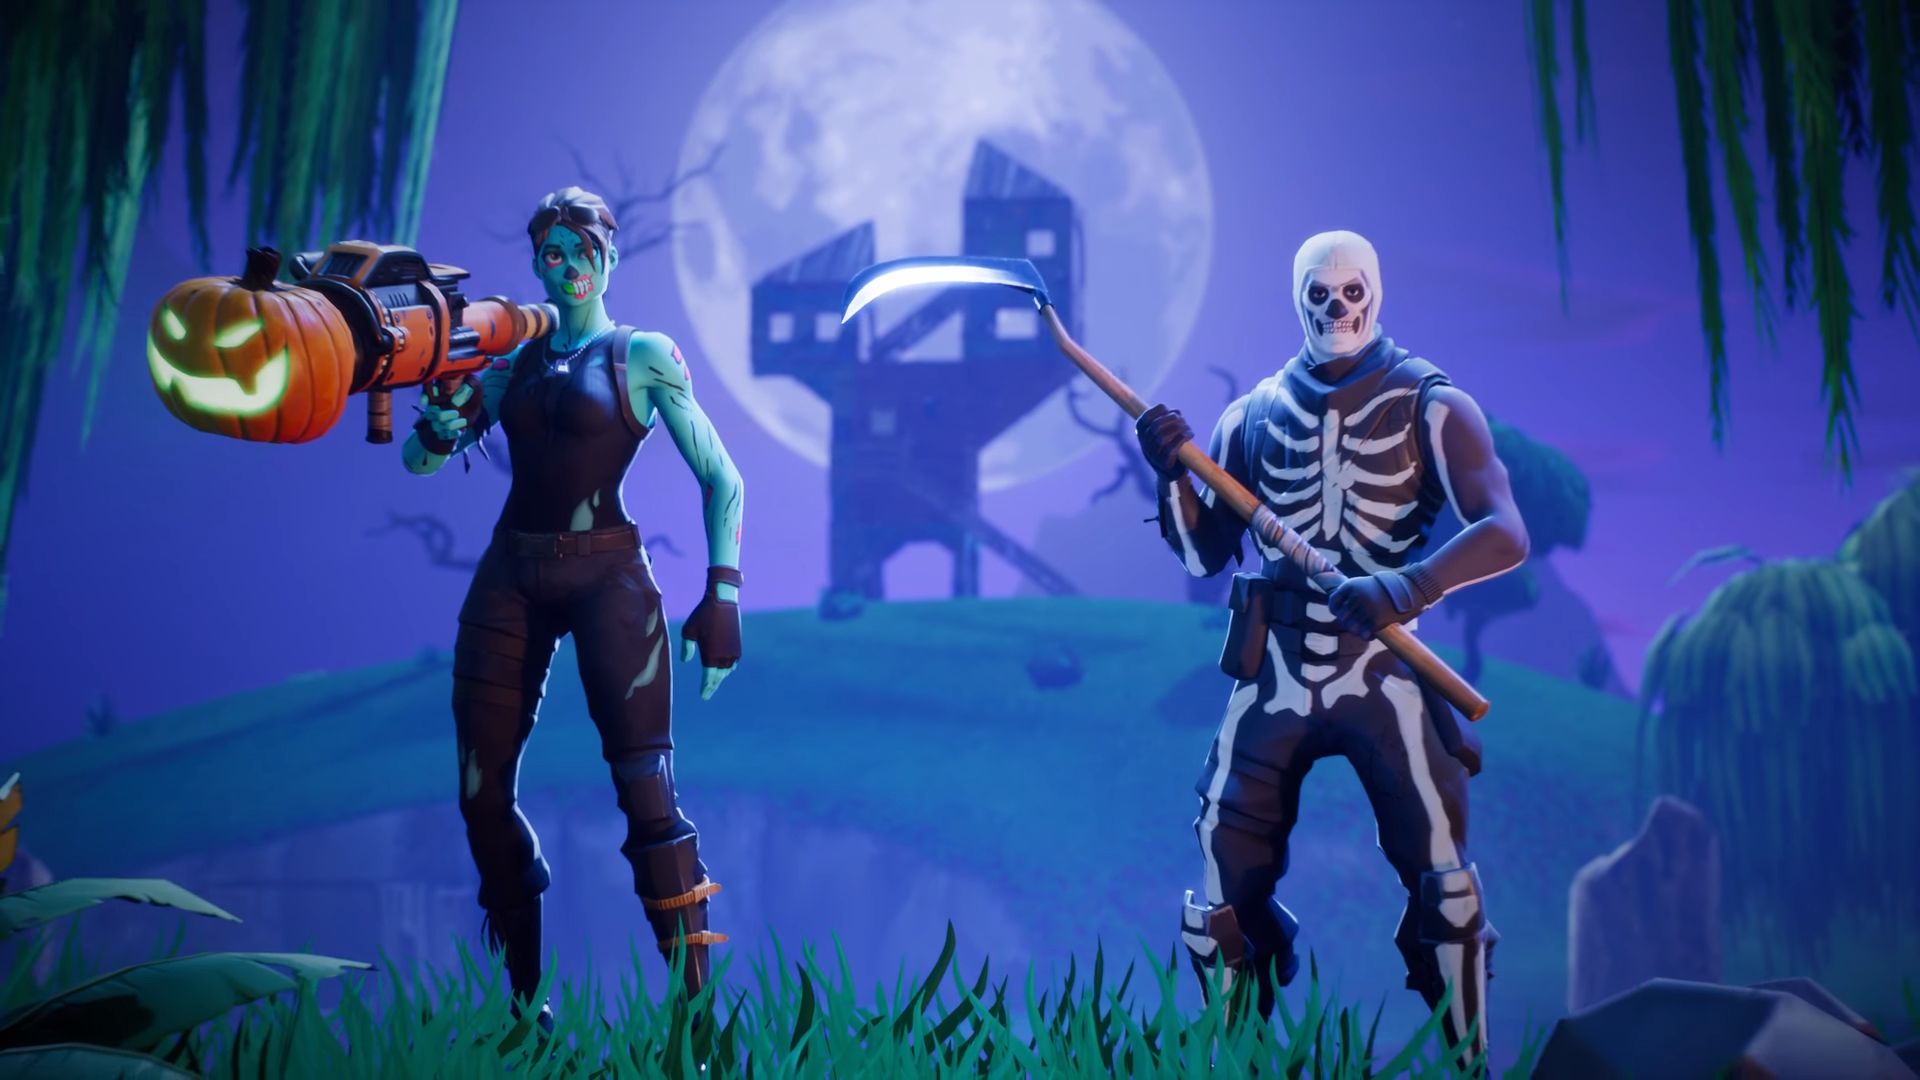 466 Fortnite Hd Wallpapers Background Images Wallpaper Abyss